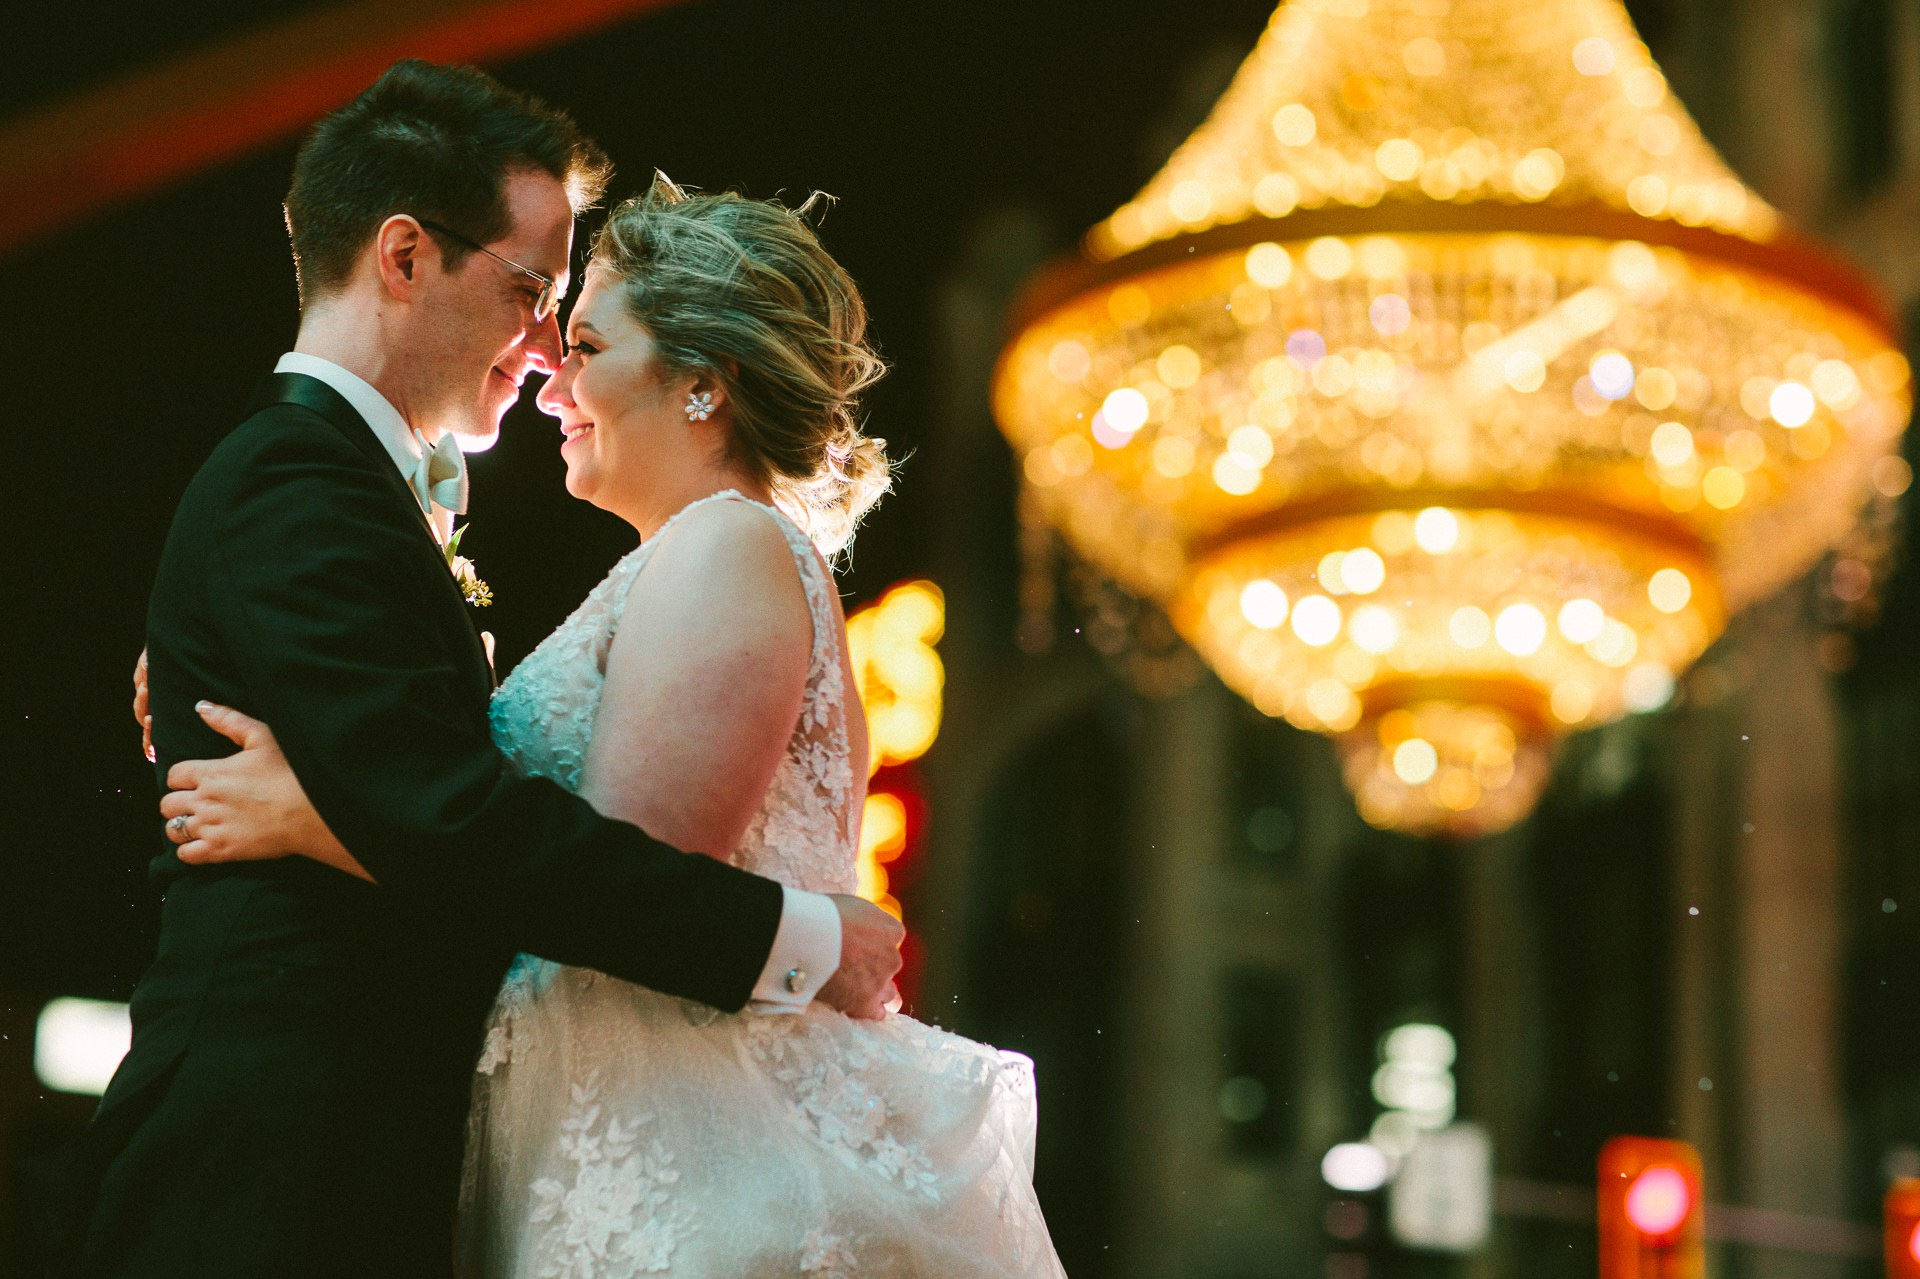 Cibreo Privato Wedding at Playhouse Square in Cleveland 2 35.jpg